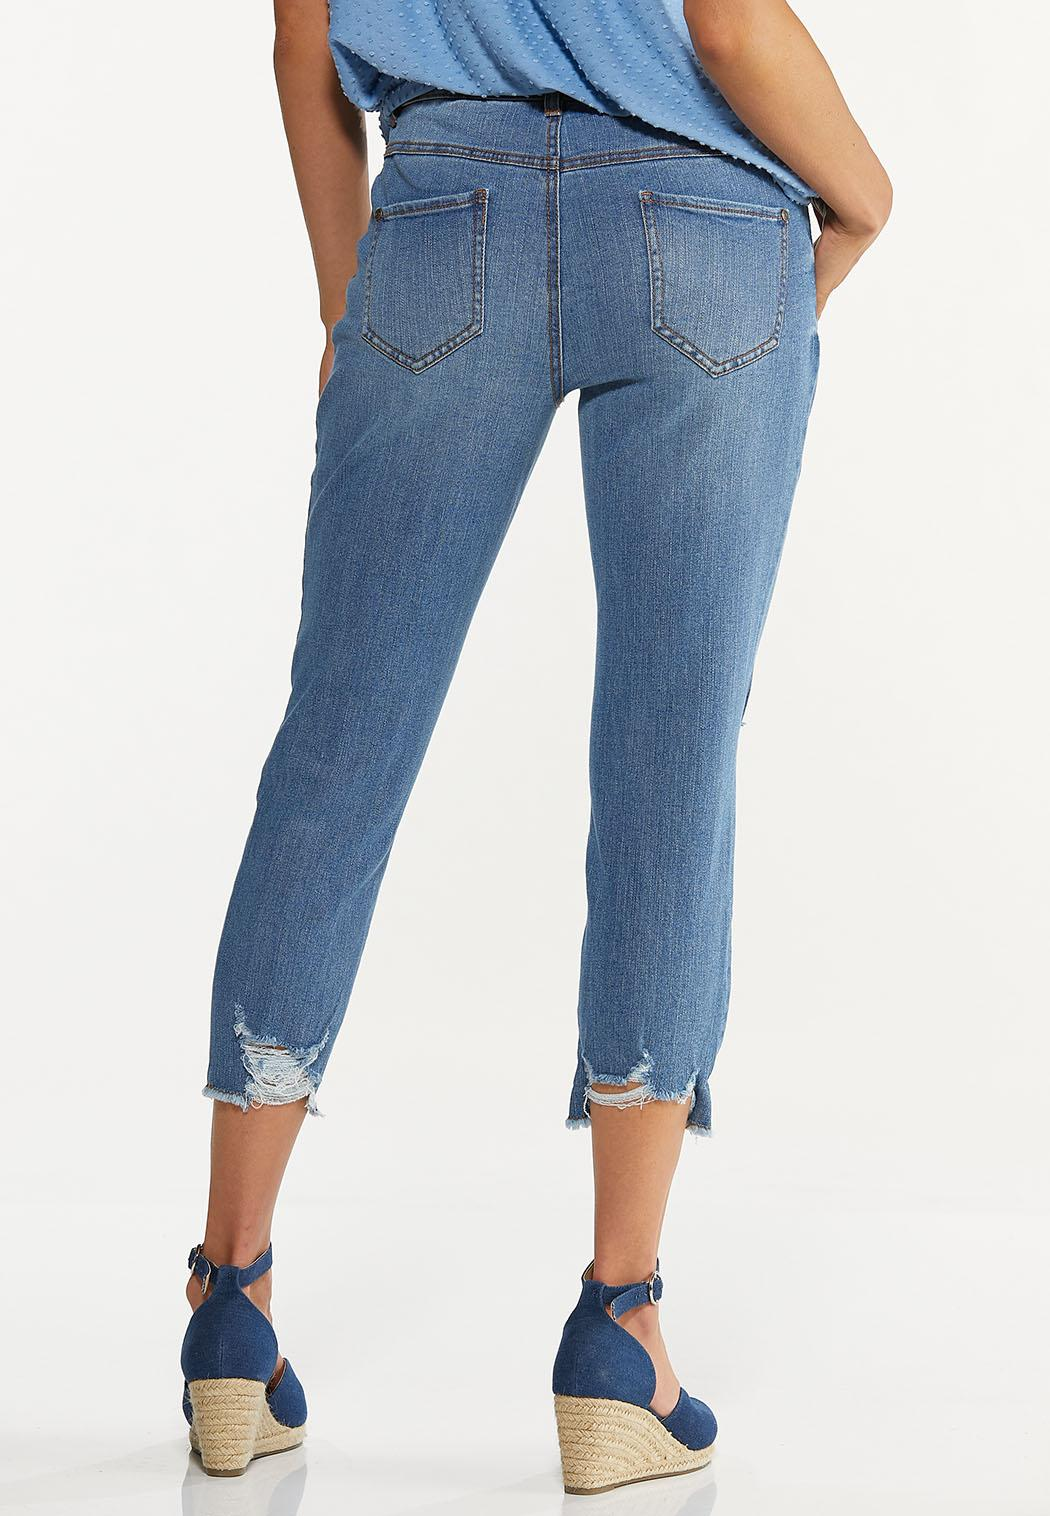 Cropped Distressed Skinny Jeans (Item #44589280)